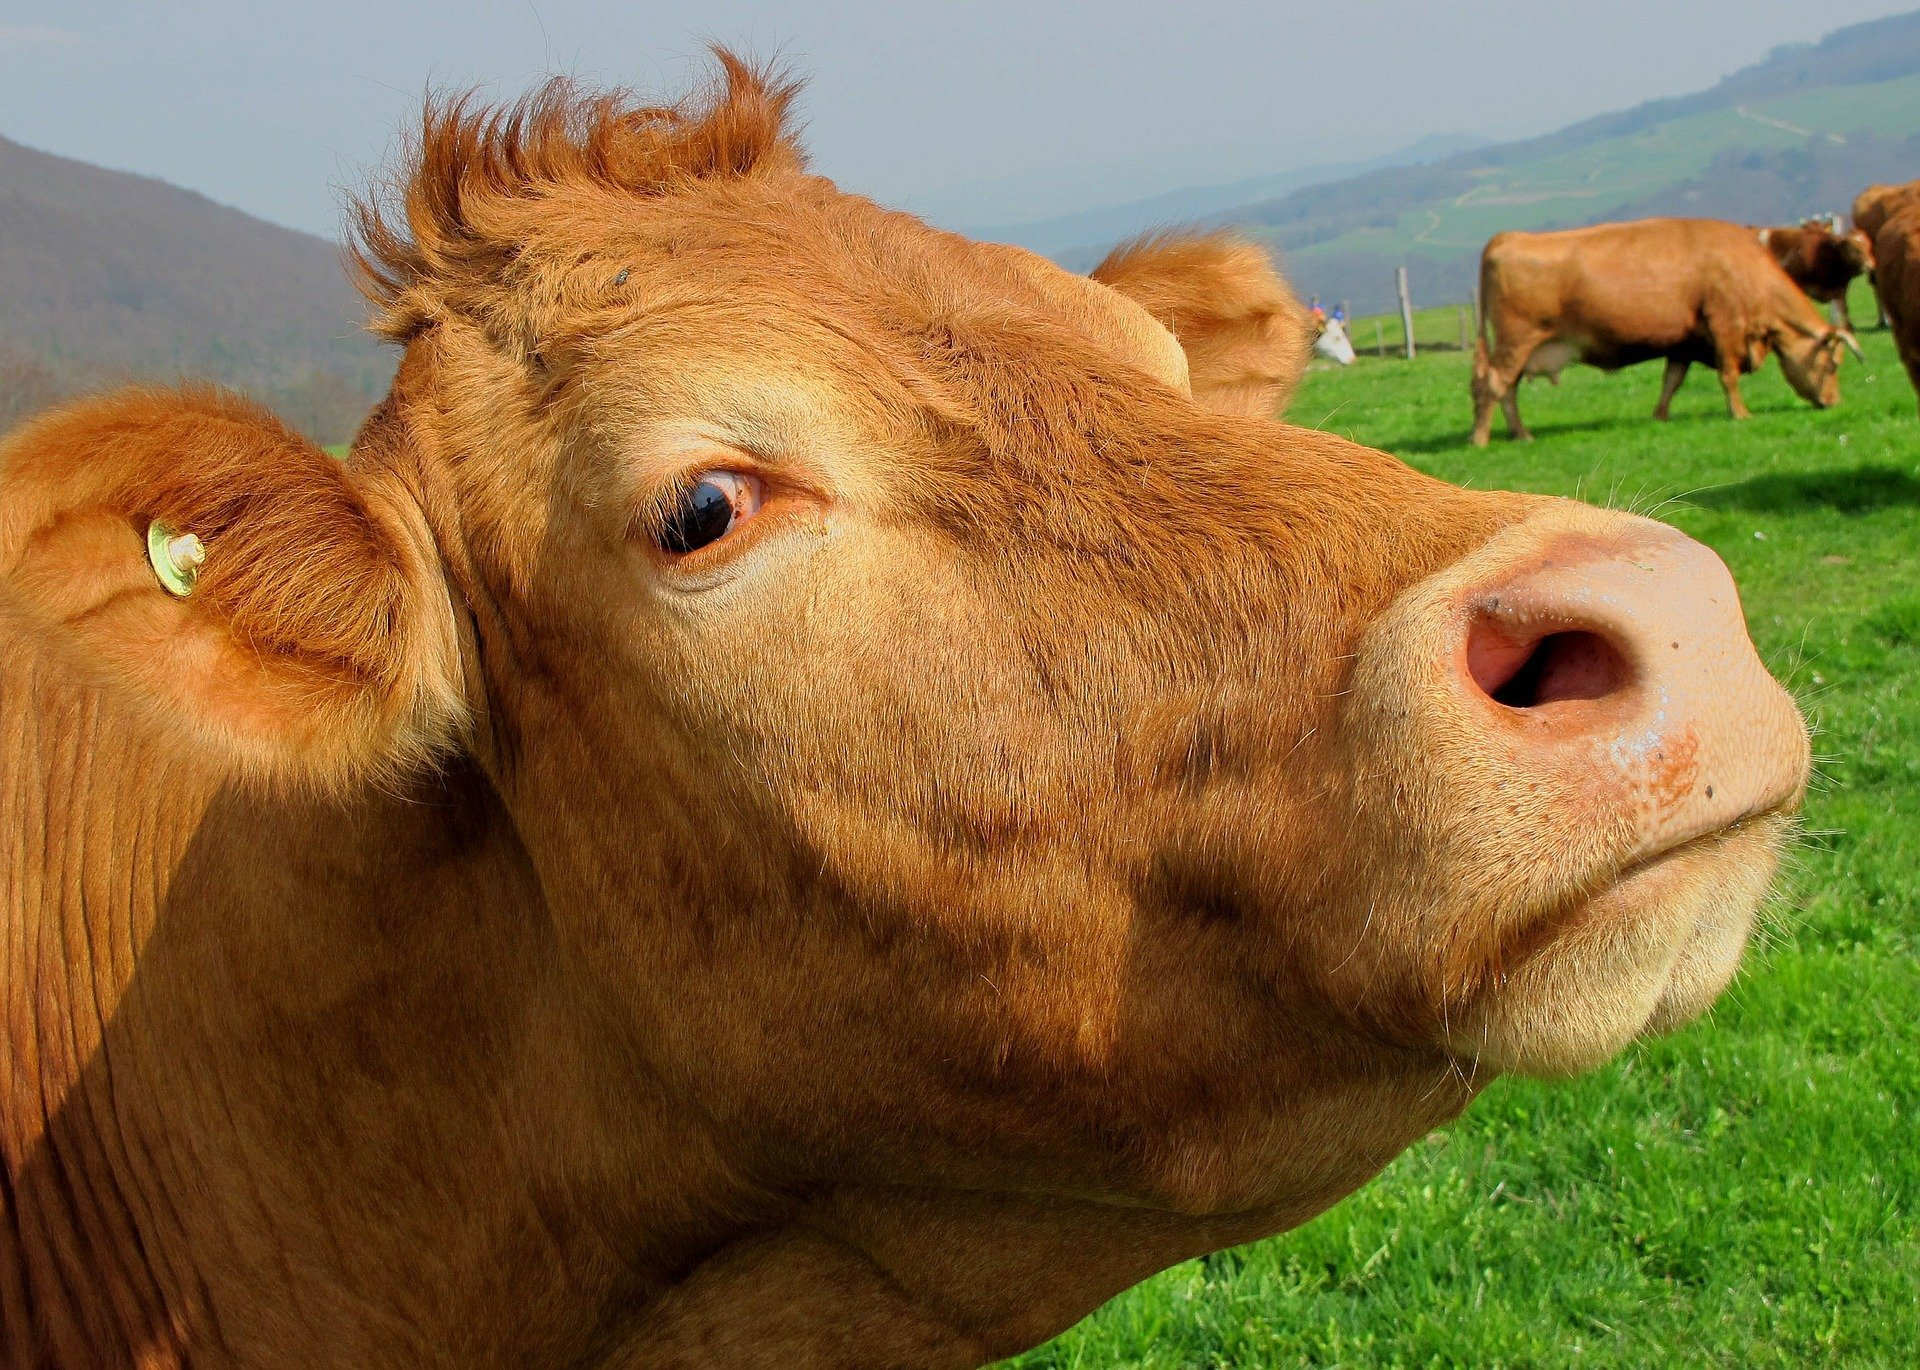 Close up of a brown cow. | Source: Pixabay